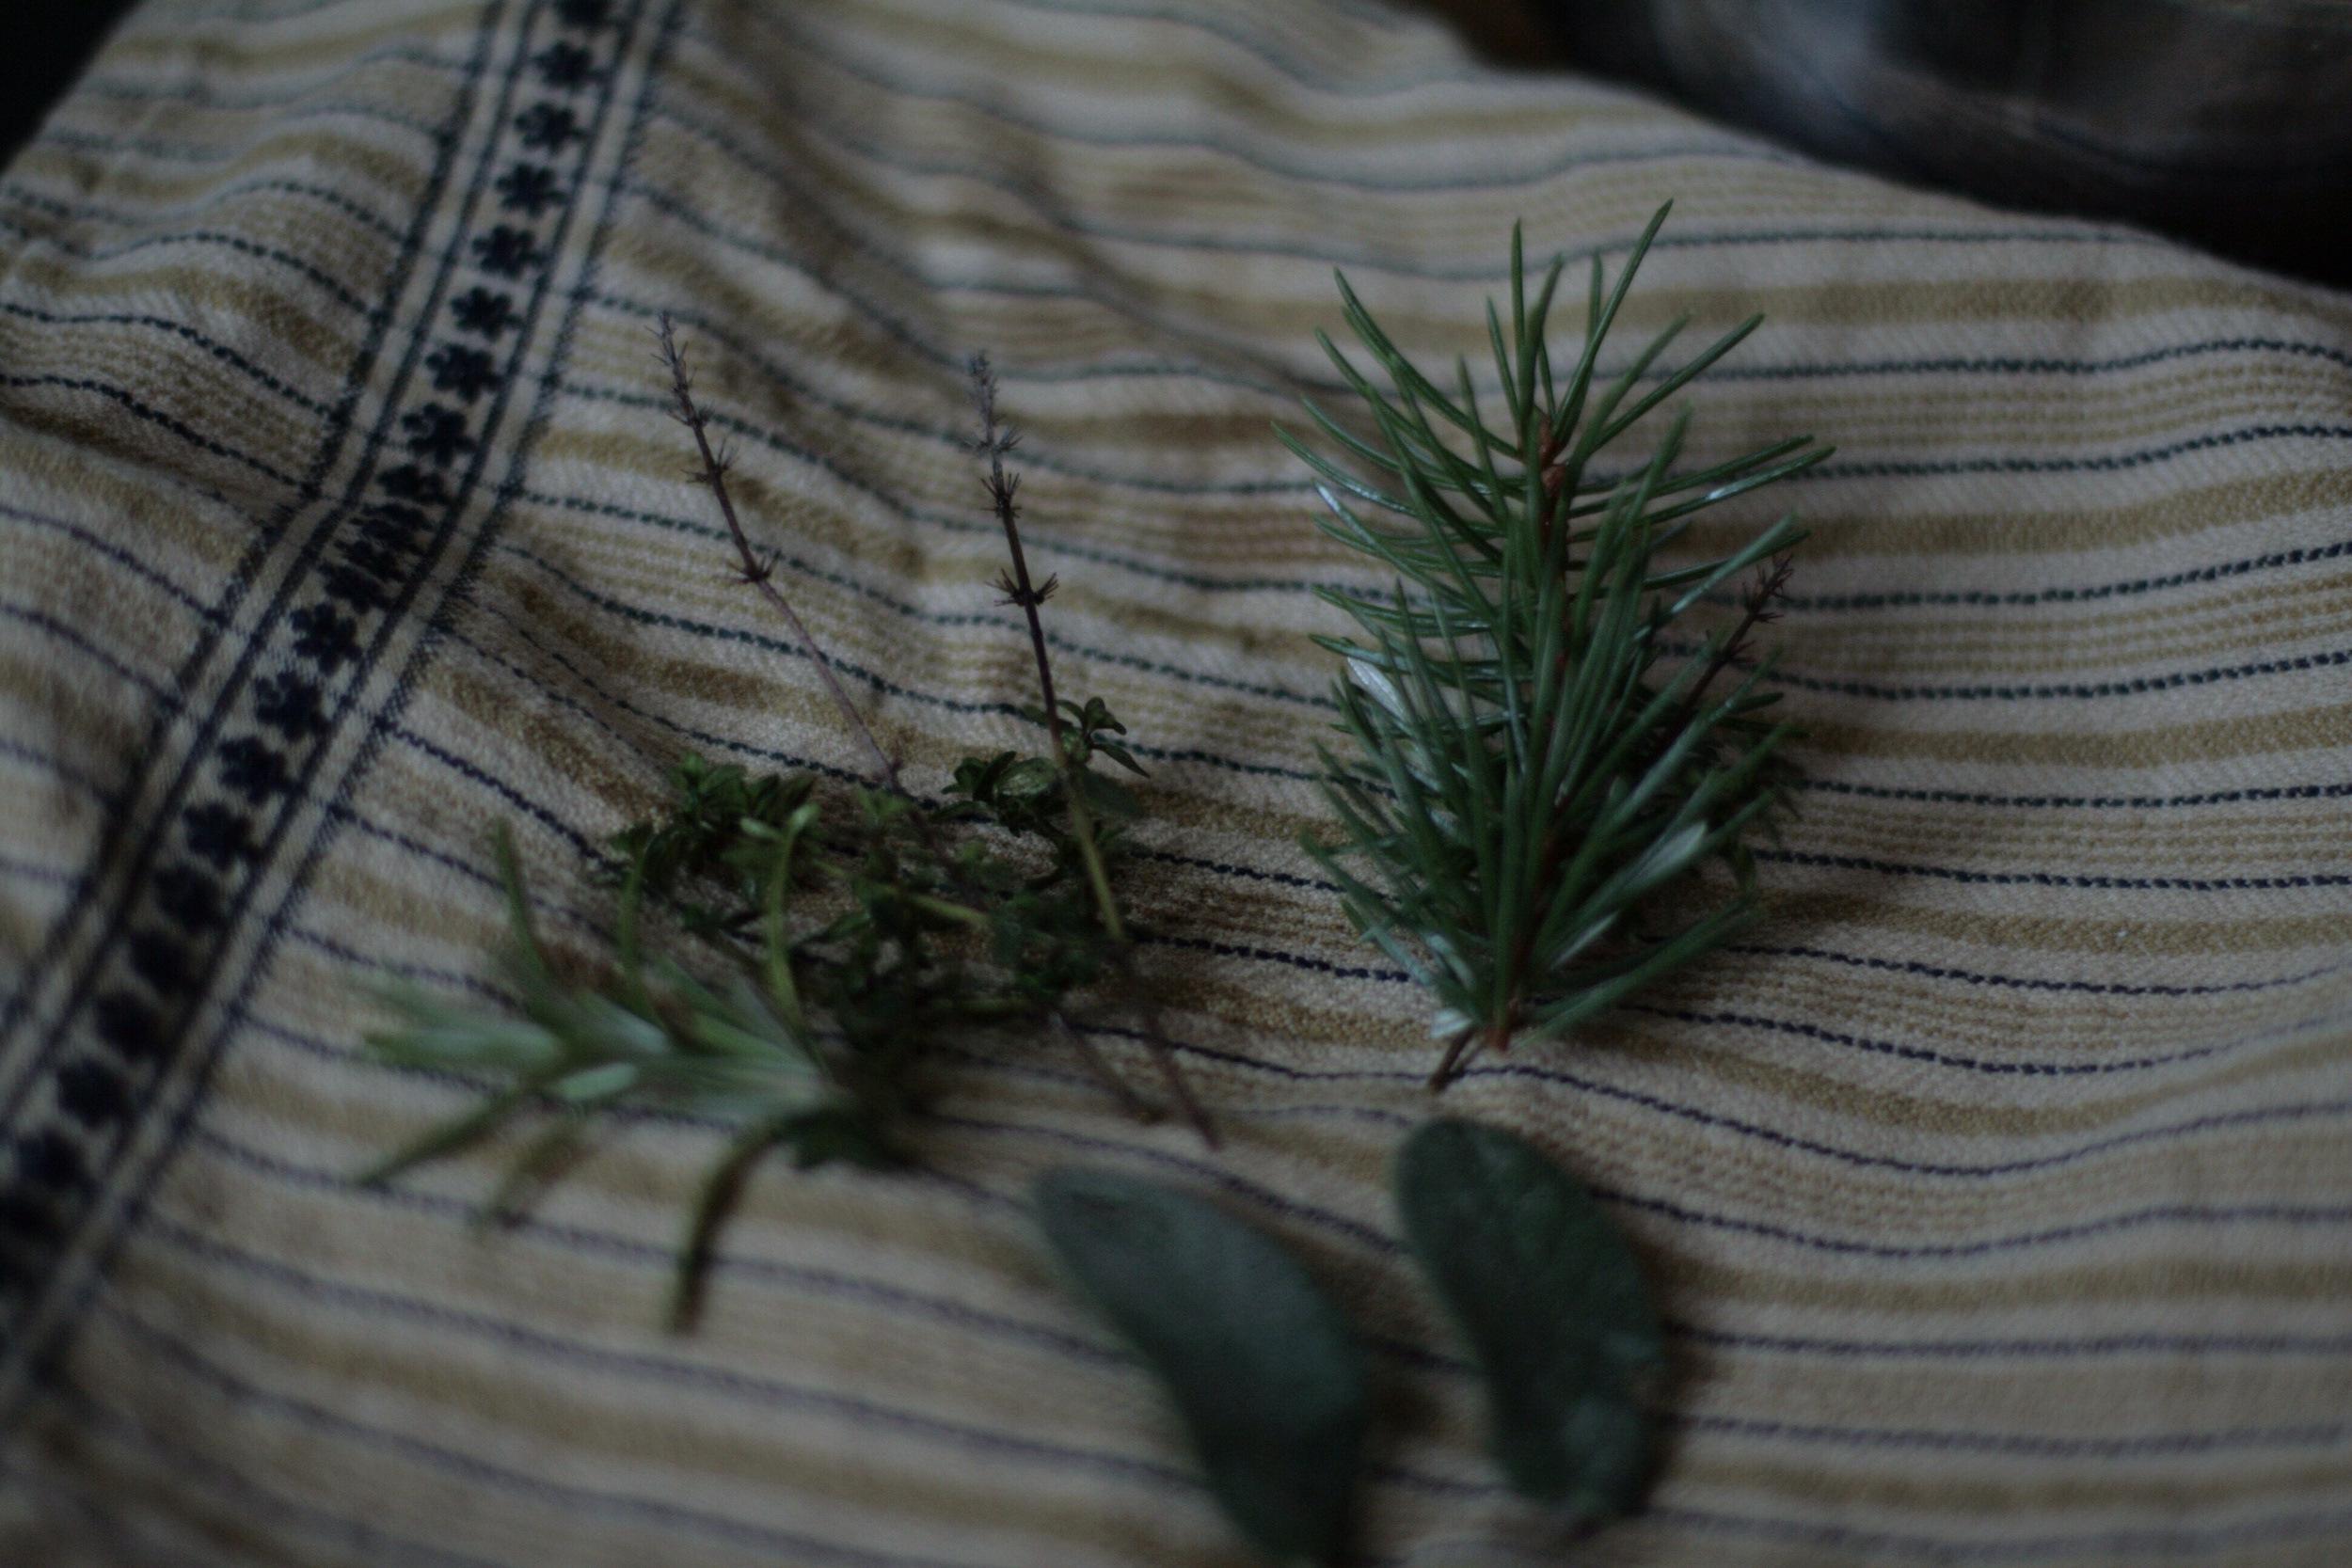 Rosemary, thyme, spruce, and sage